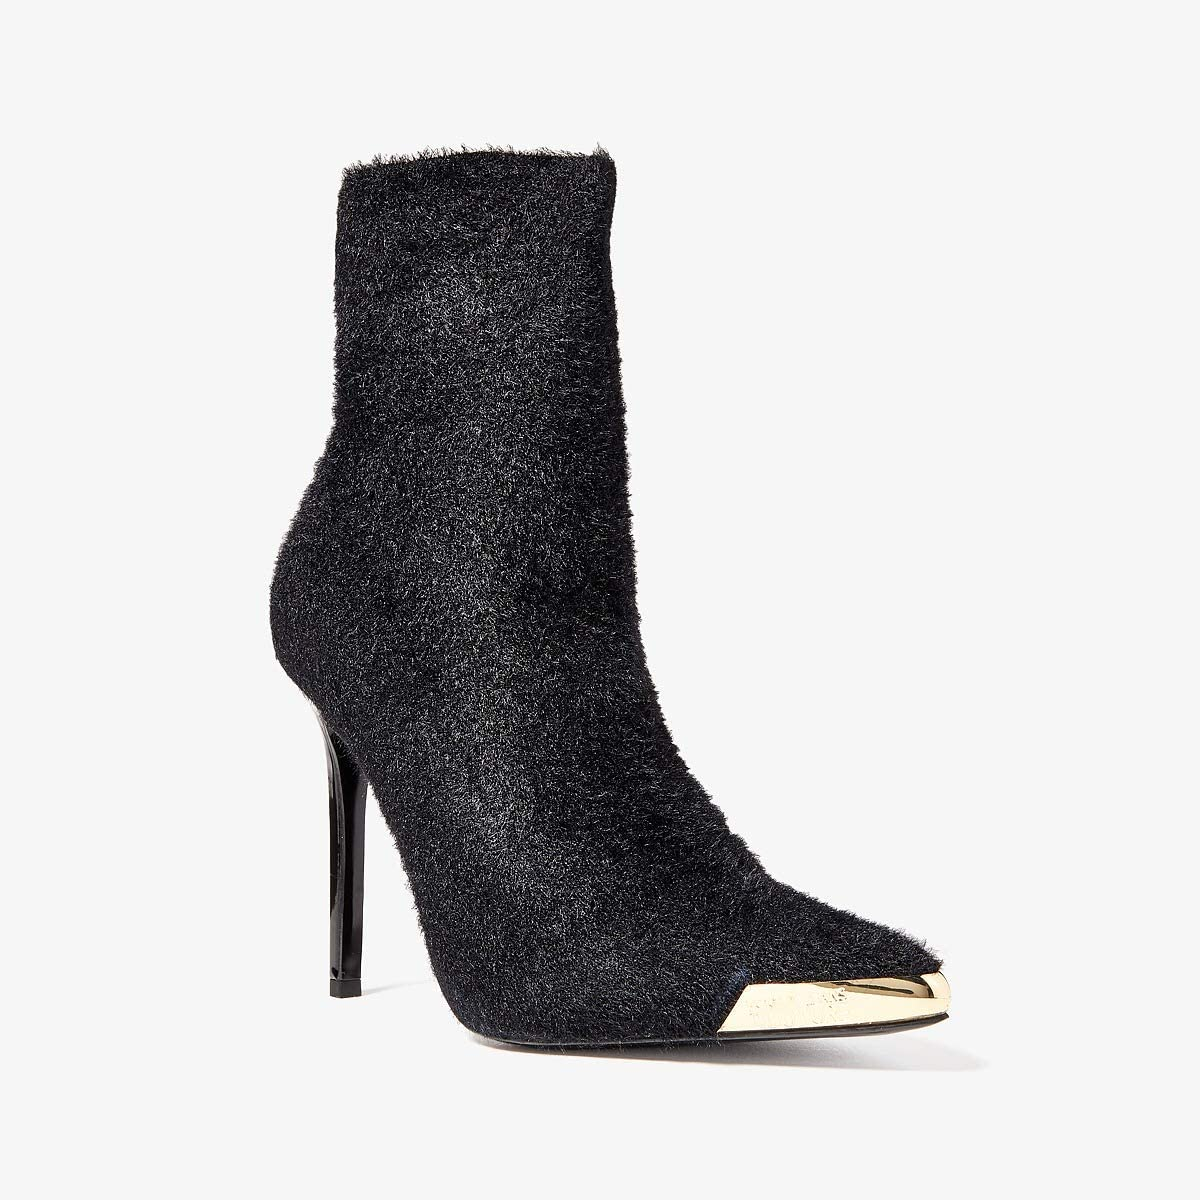 Versace Jeans Couture Textured Gold Toe Ankle Boots | Women's shoes | 2020 Newest